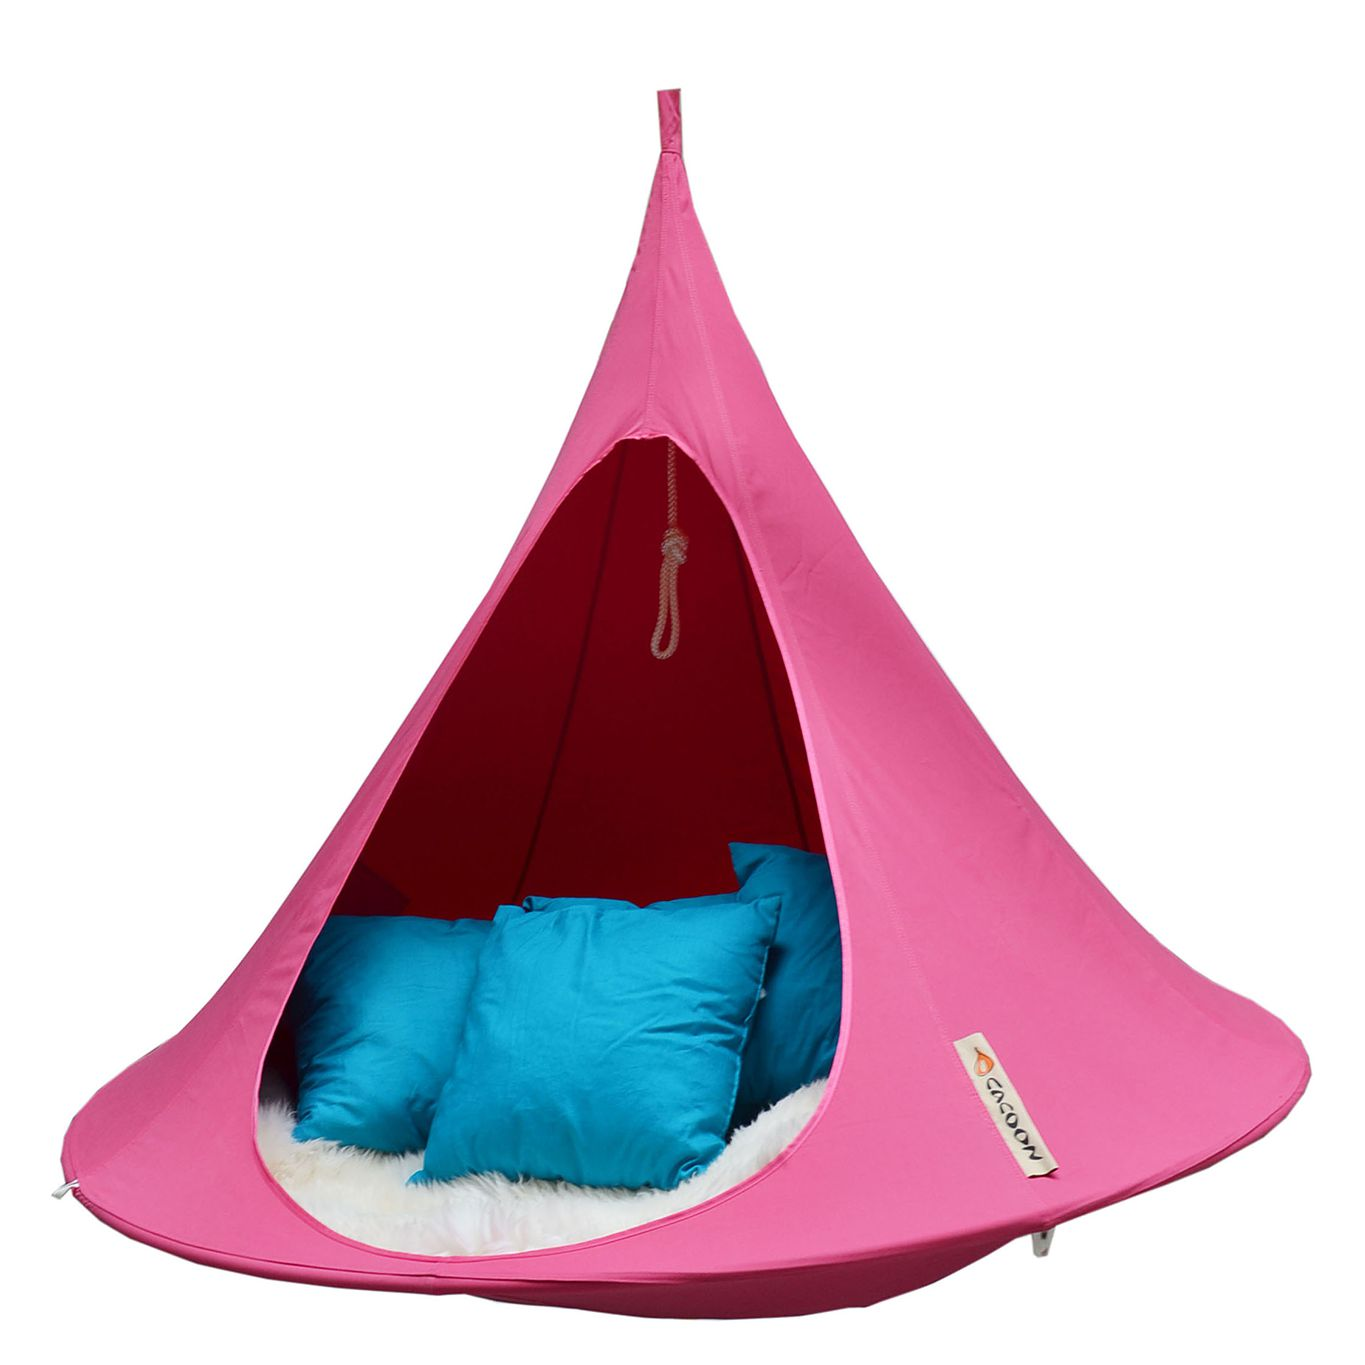 Hängezelt Cacoon Double - Mischgewebe - Fuchsia, Hang in out